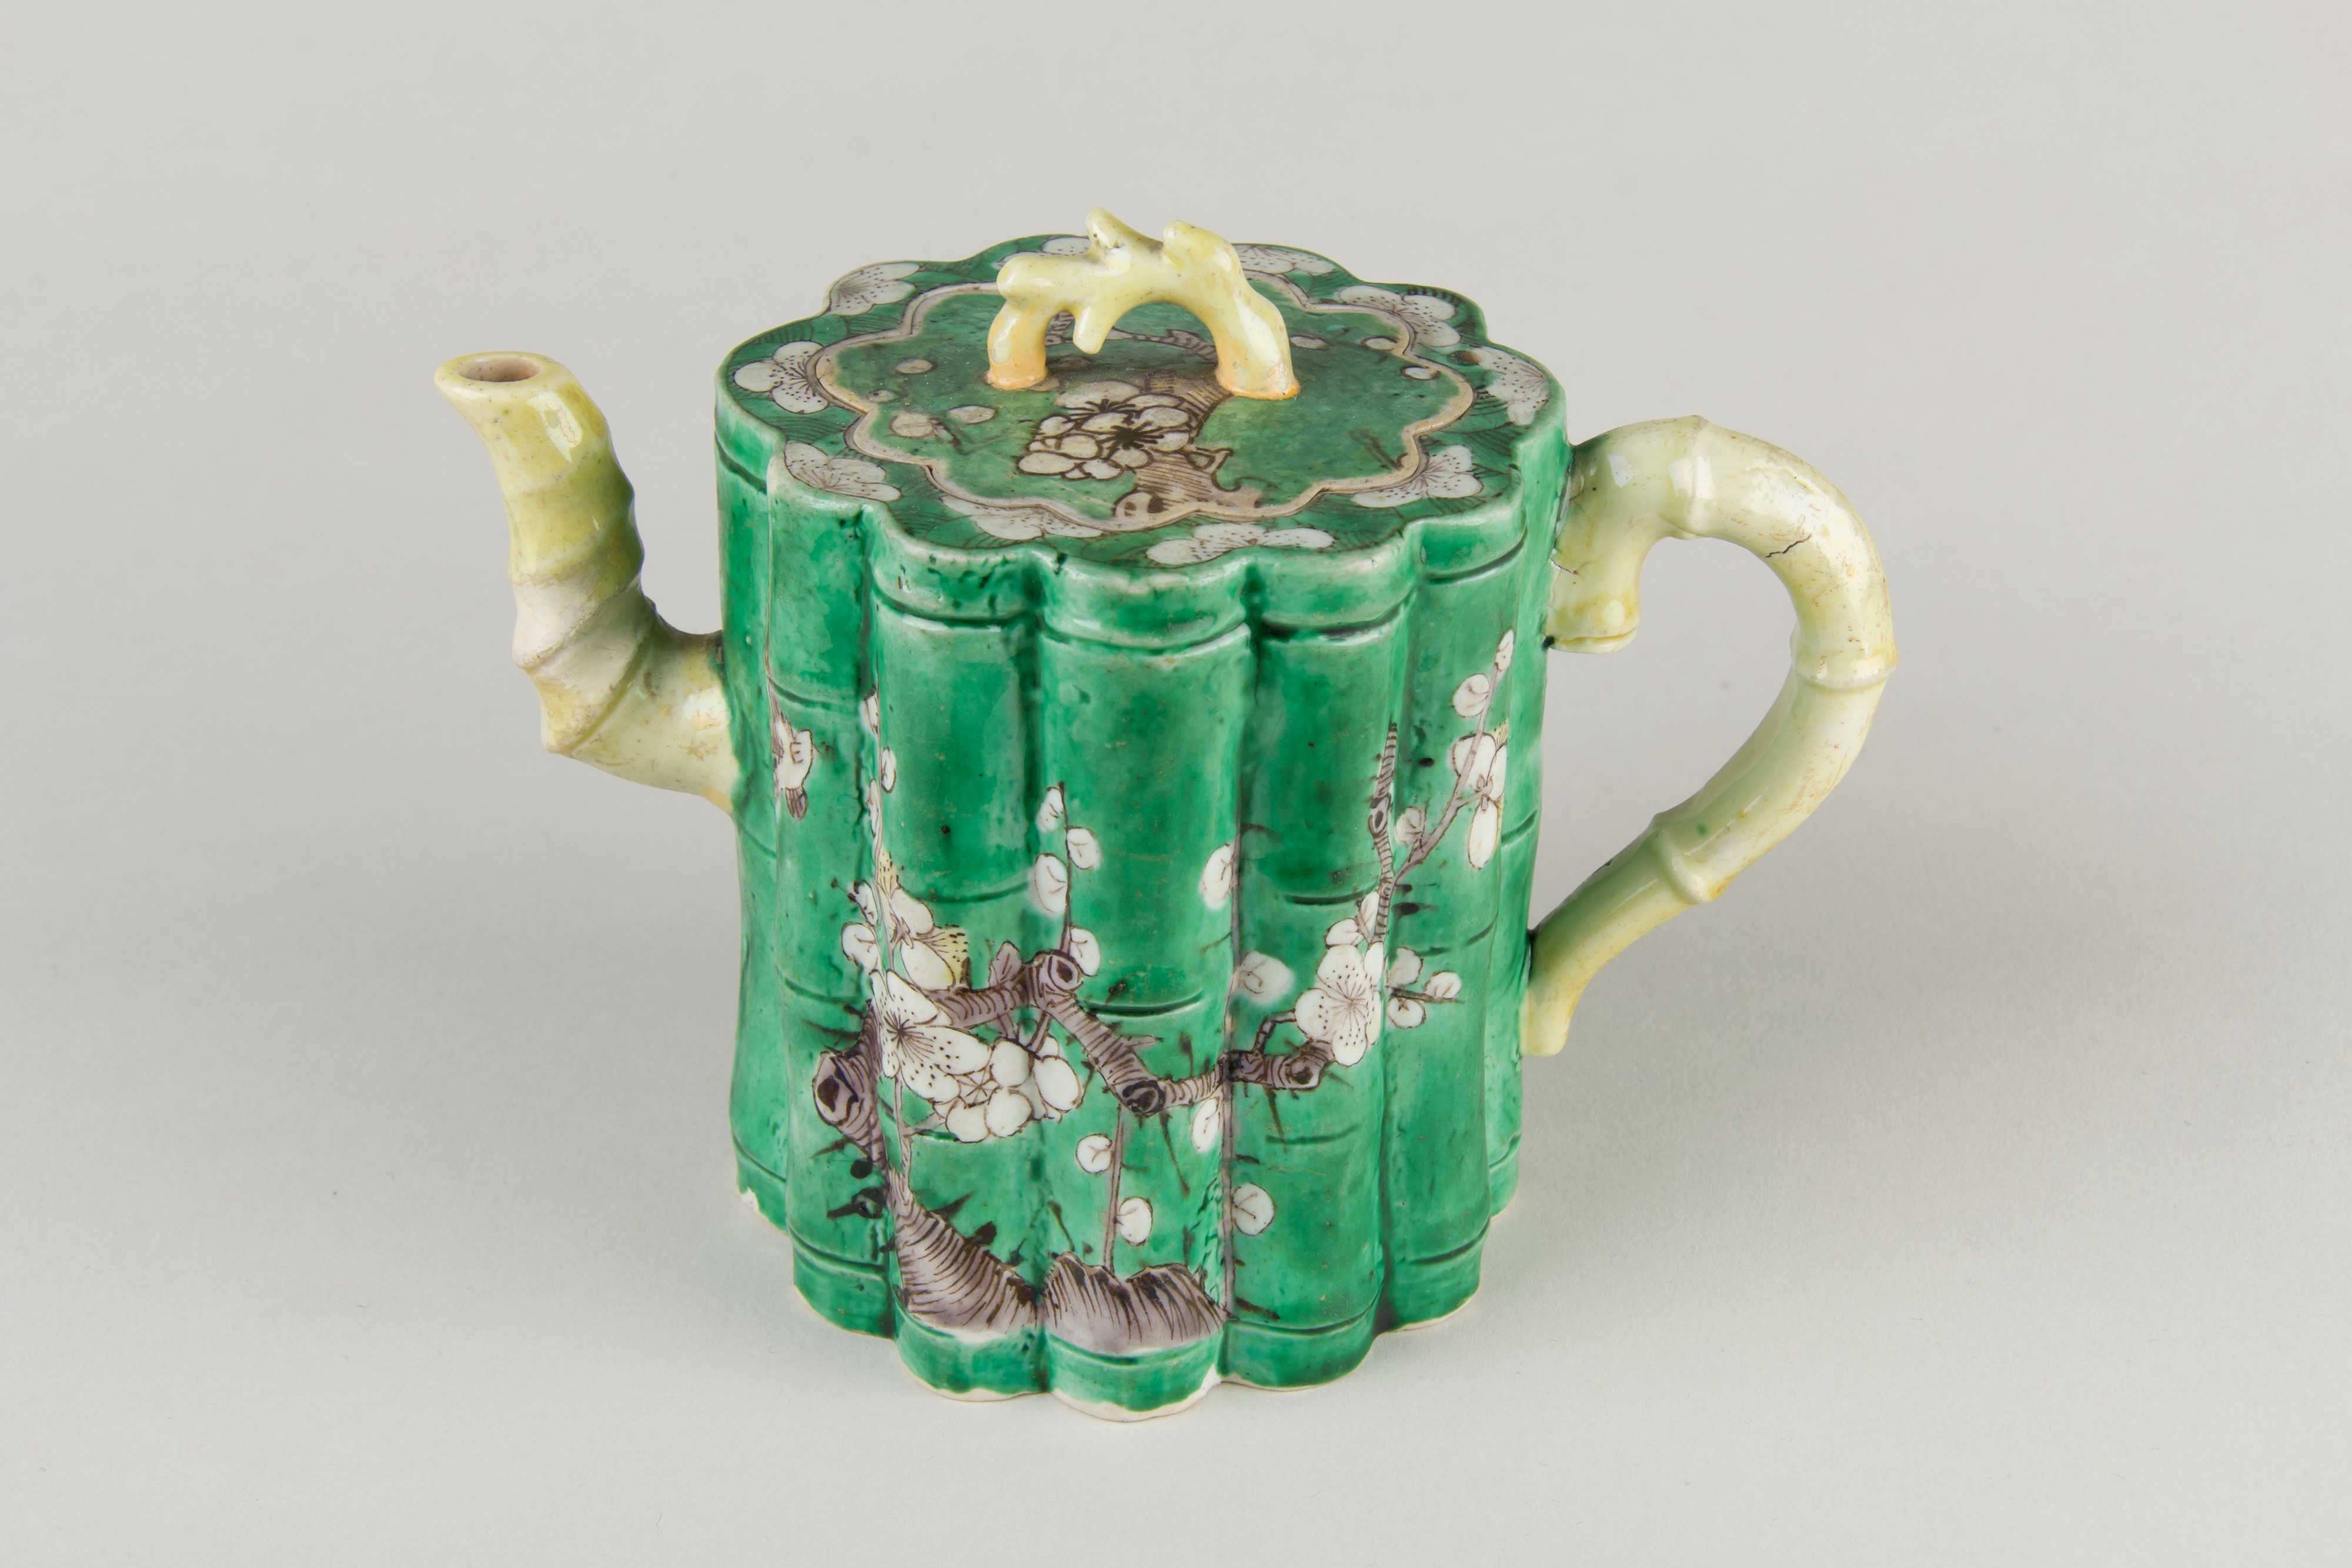 green teapot with floral design